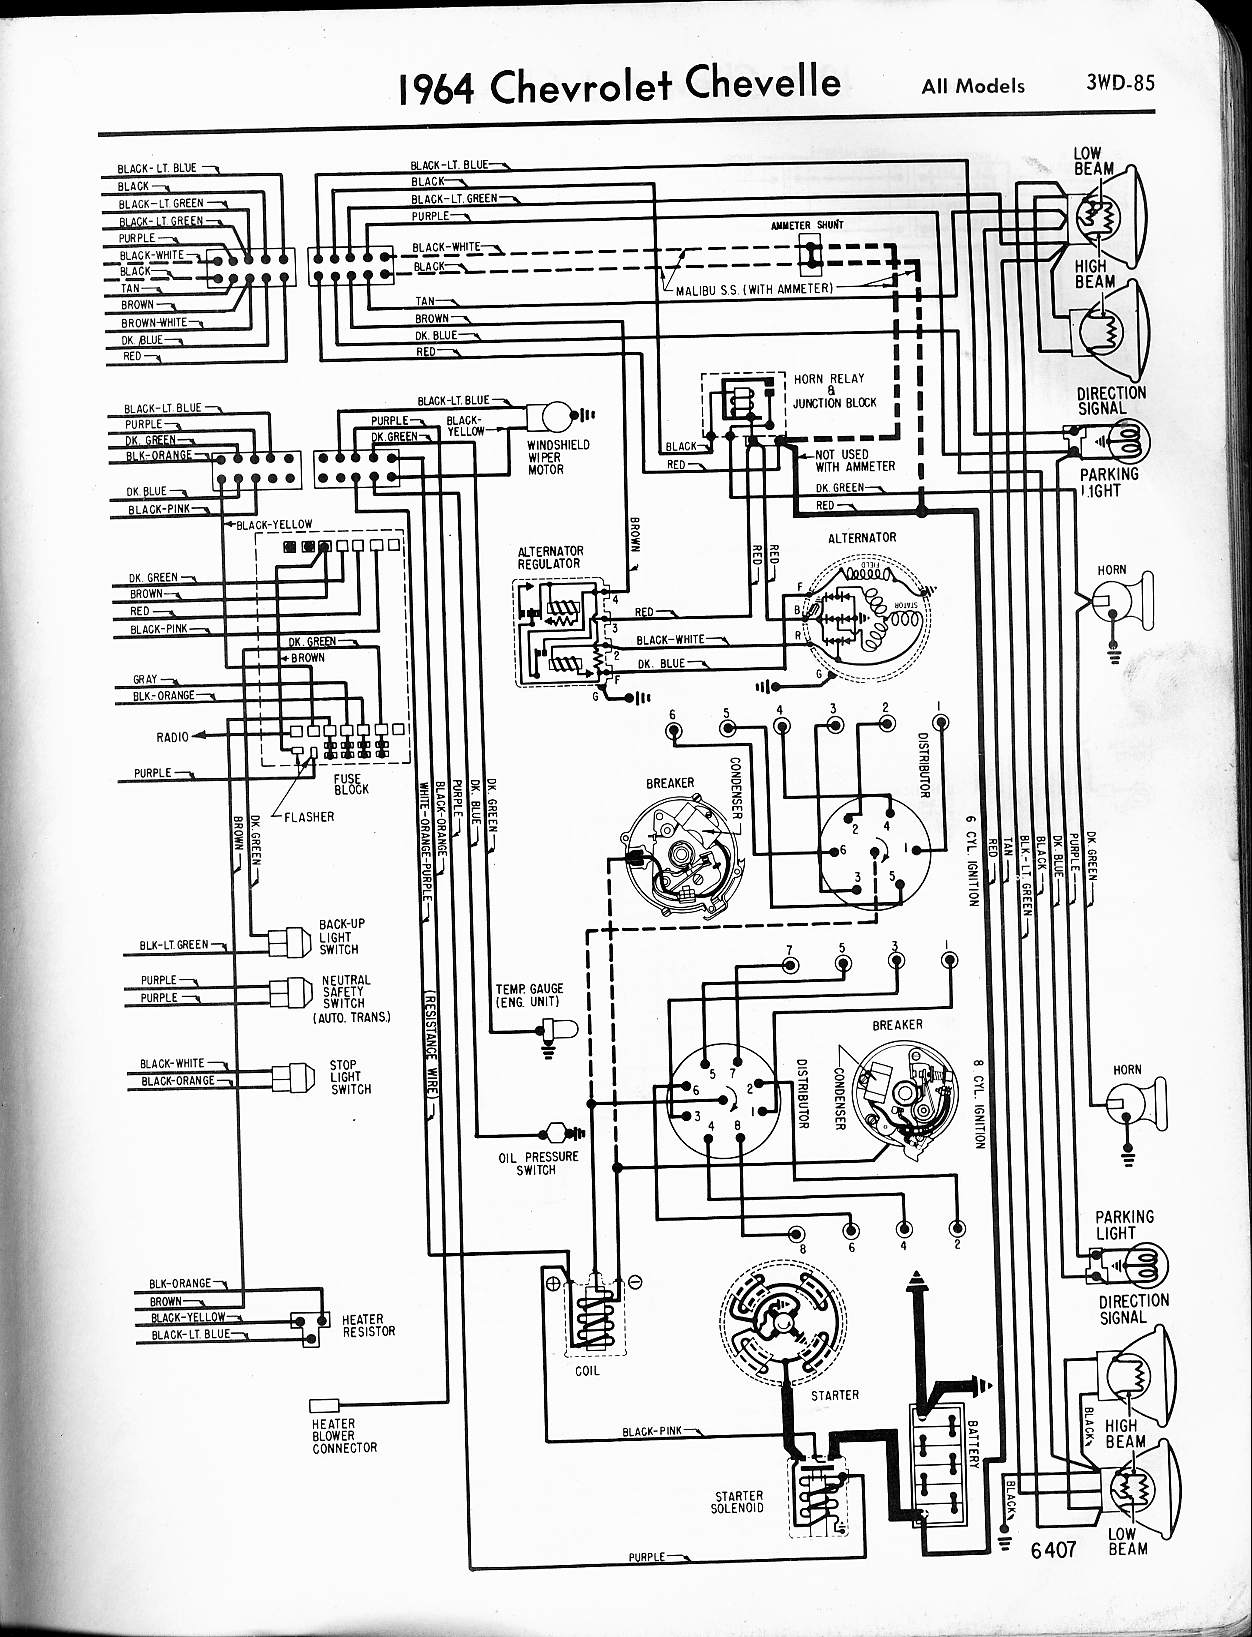 MWireChev64_3WD 085 57 65 chevy wiring diagrams 1964 chevy wiring diagram at soozxer.org